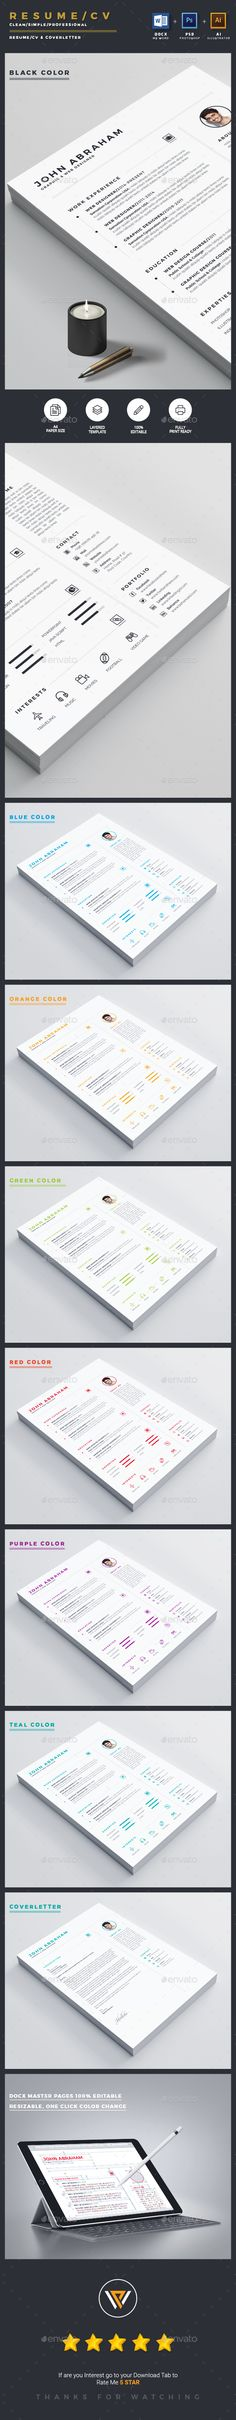 Pin by Hired Design Studio on Resume templates for word Pinterest - resume music